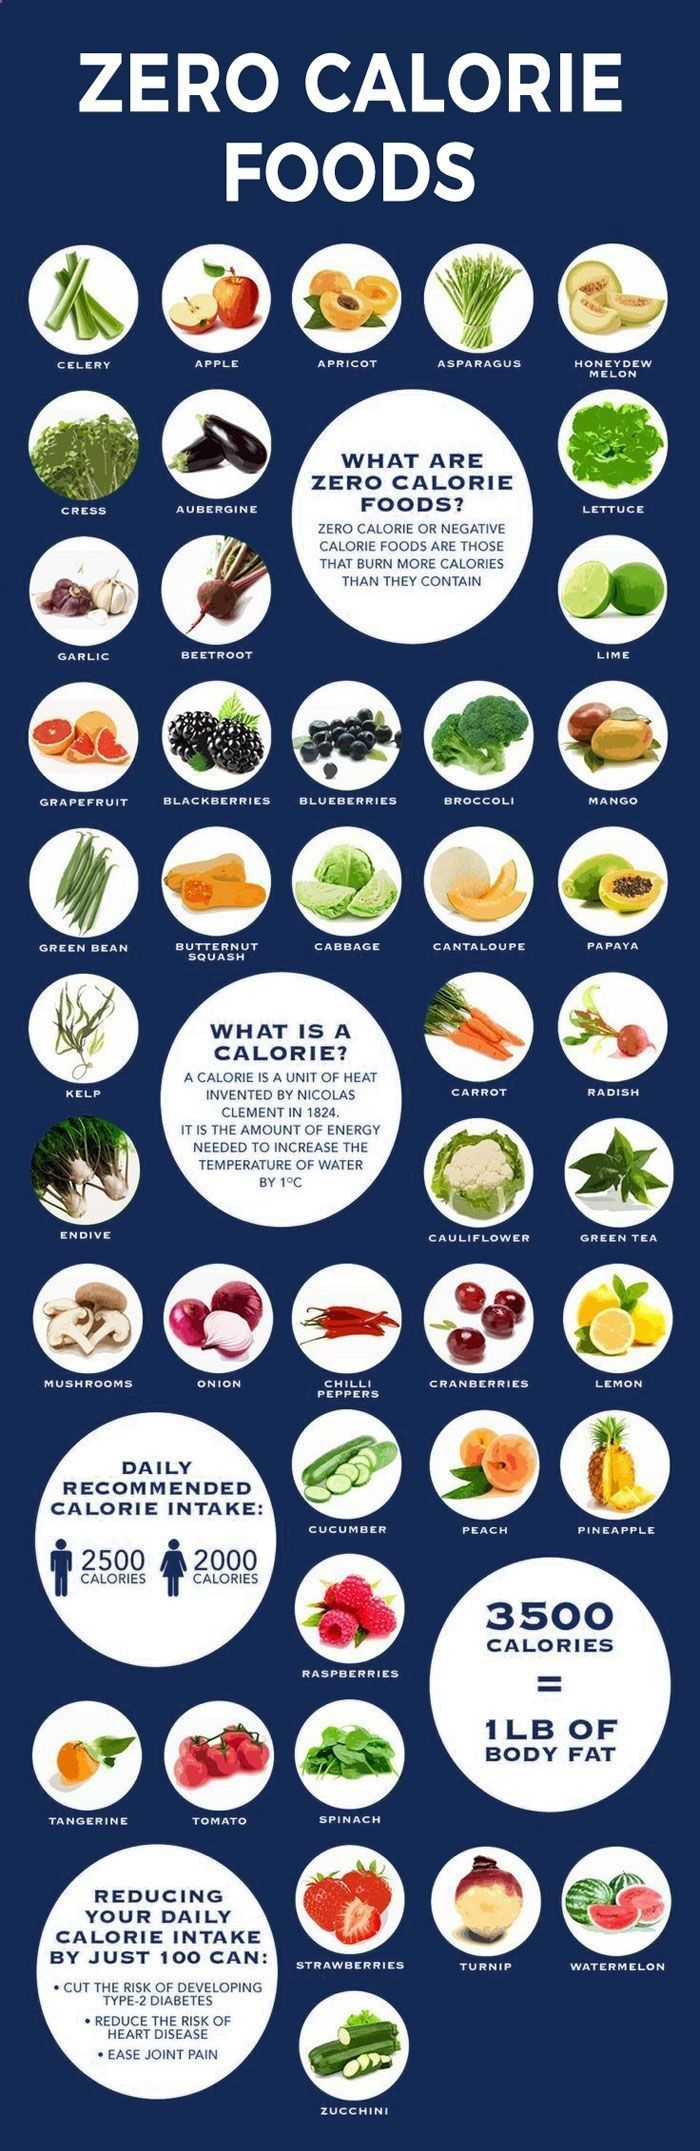 What are zero calorie foods what is their best benefit?